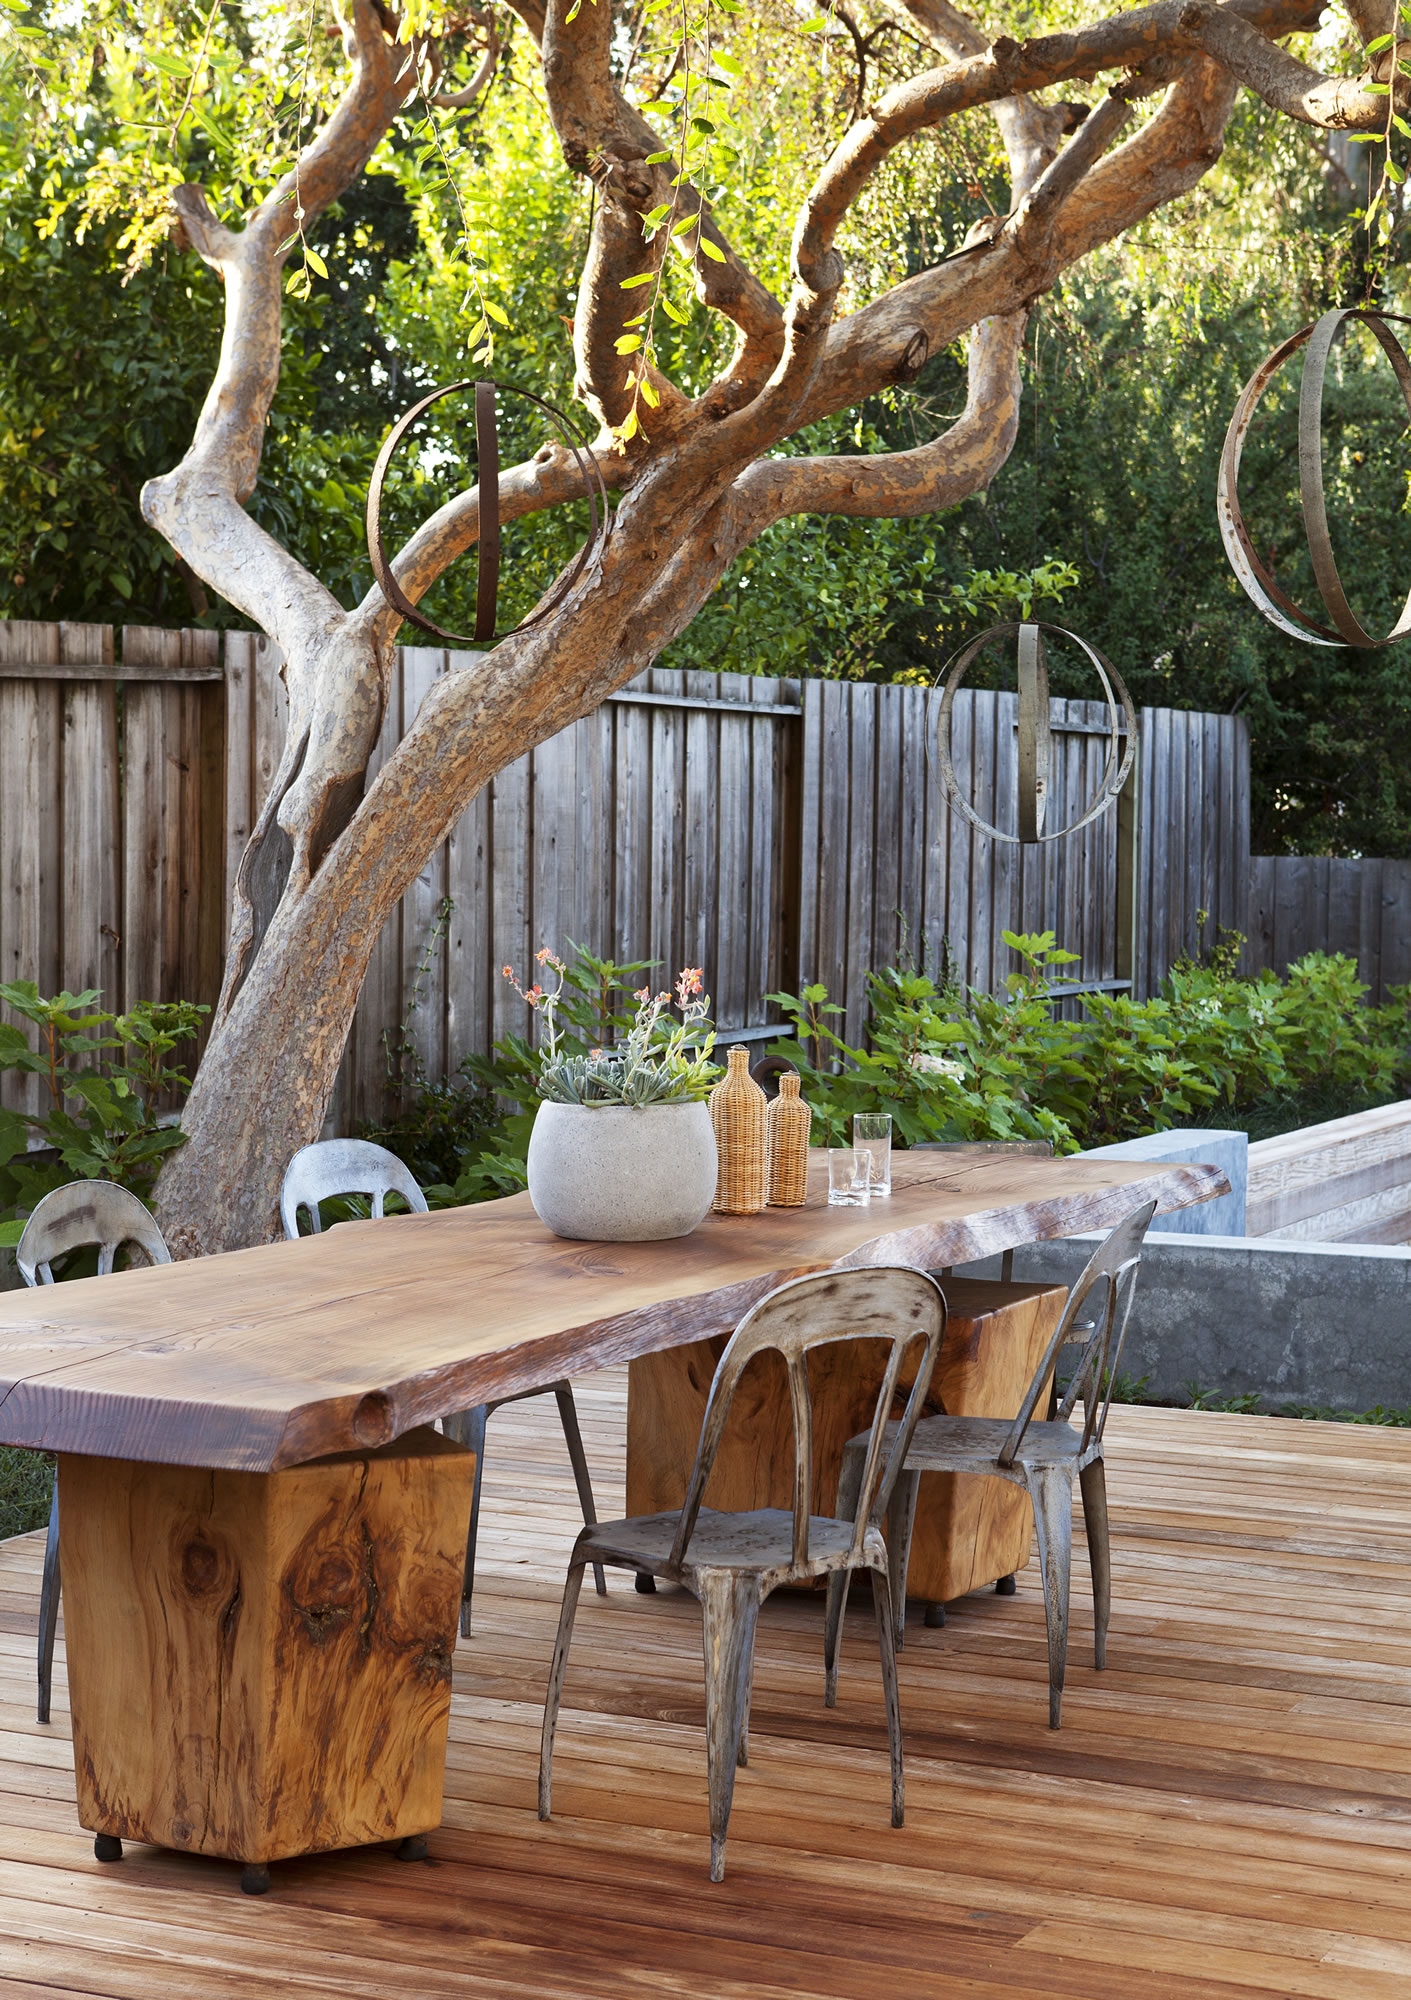 50 Best Patio Ideas For Design Inspiration for 2017 on Patio Surfaces Ideas id=82857